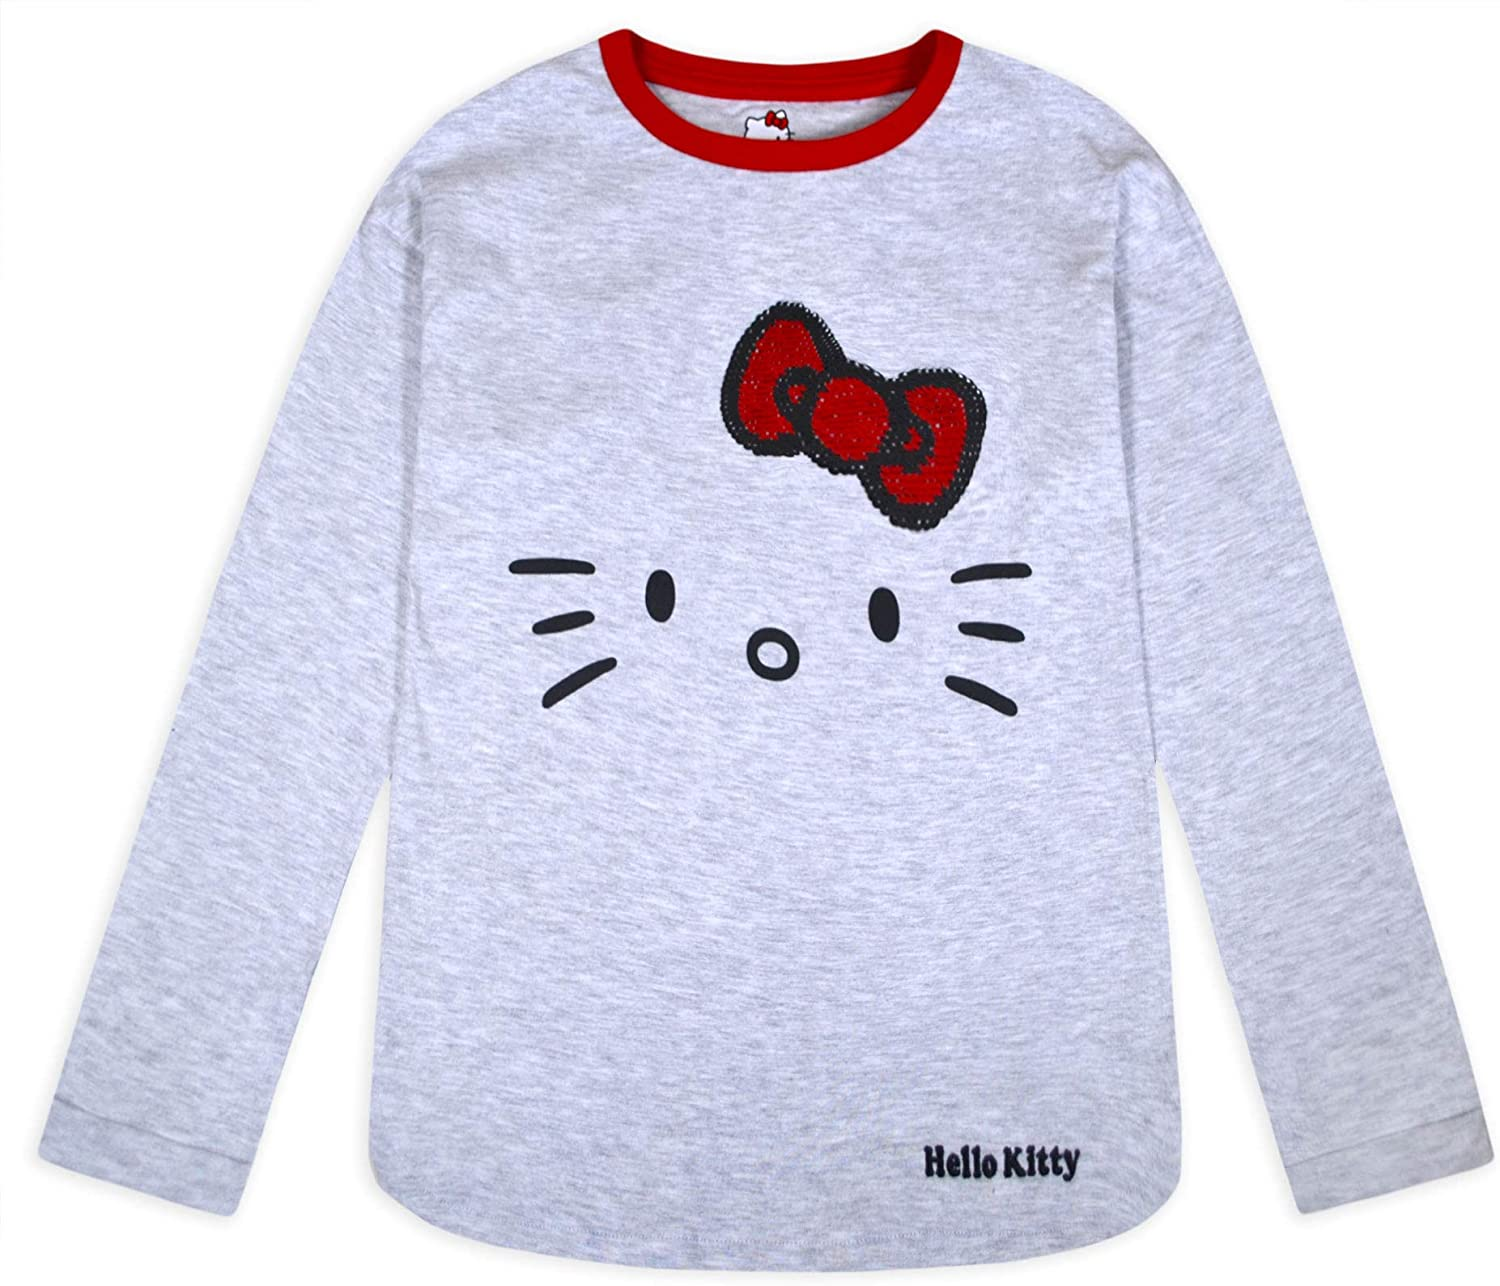 jolly rascals Girls Hello Kitty Long Sleeve in Top Cotton Polyester with Crew Neck Long Sleeves